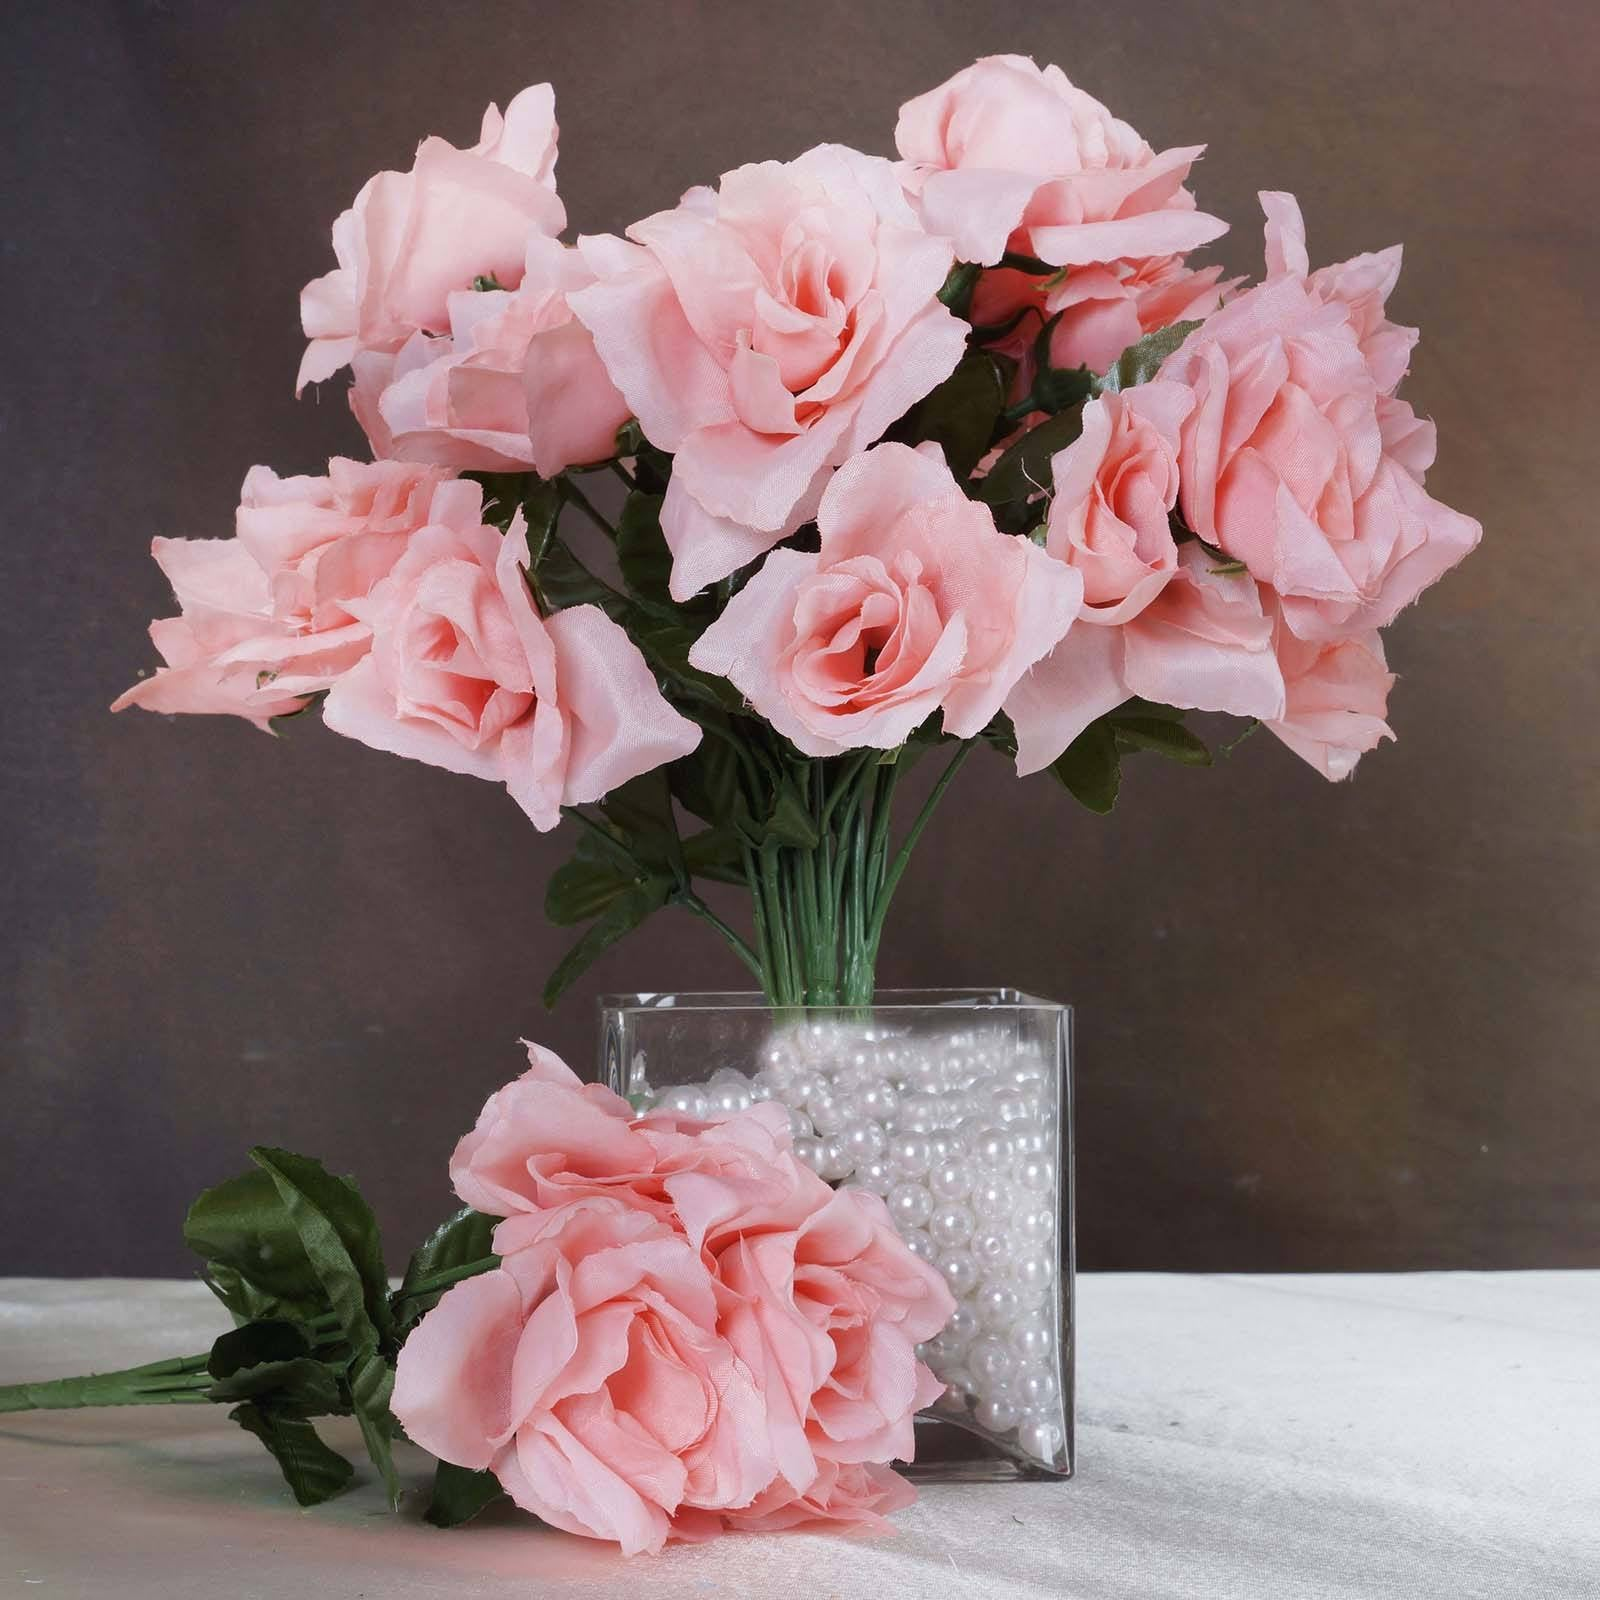 12 Bushes 84 pcs Peach Artificial Silk Rose Flowers With Green ...